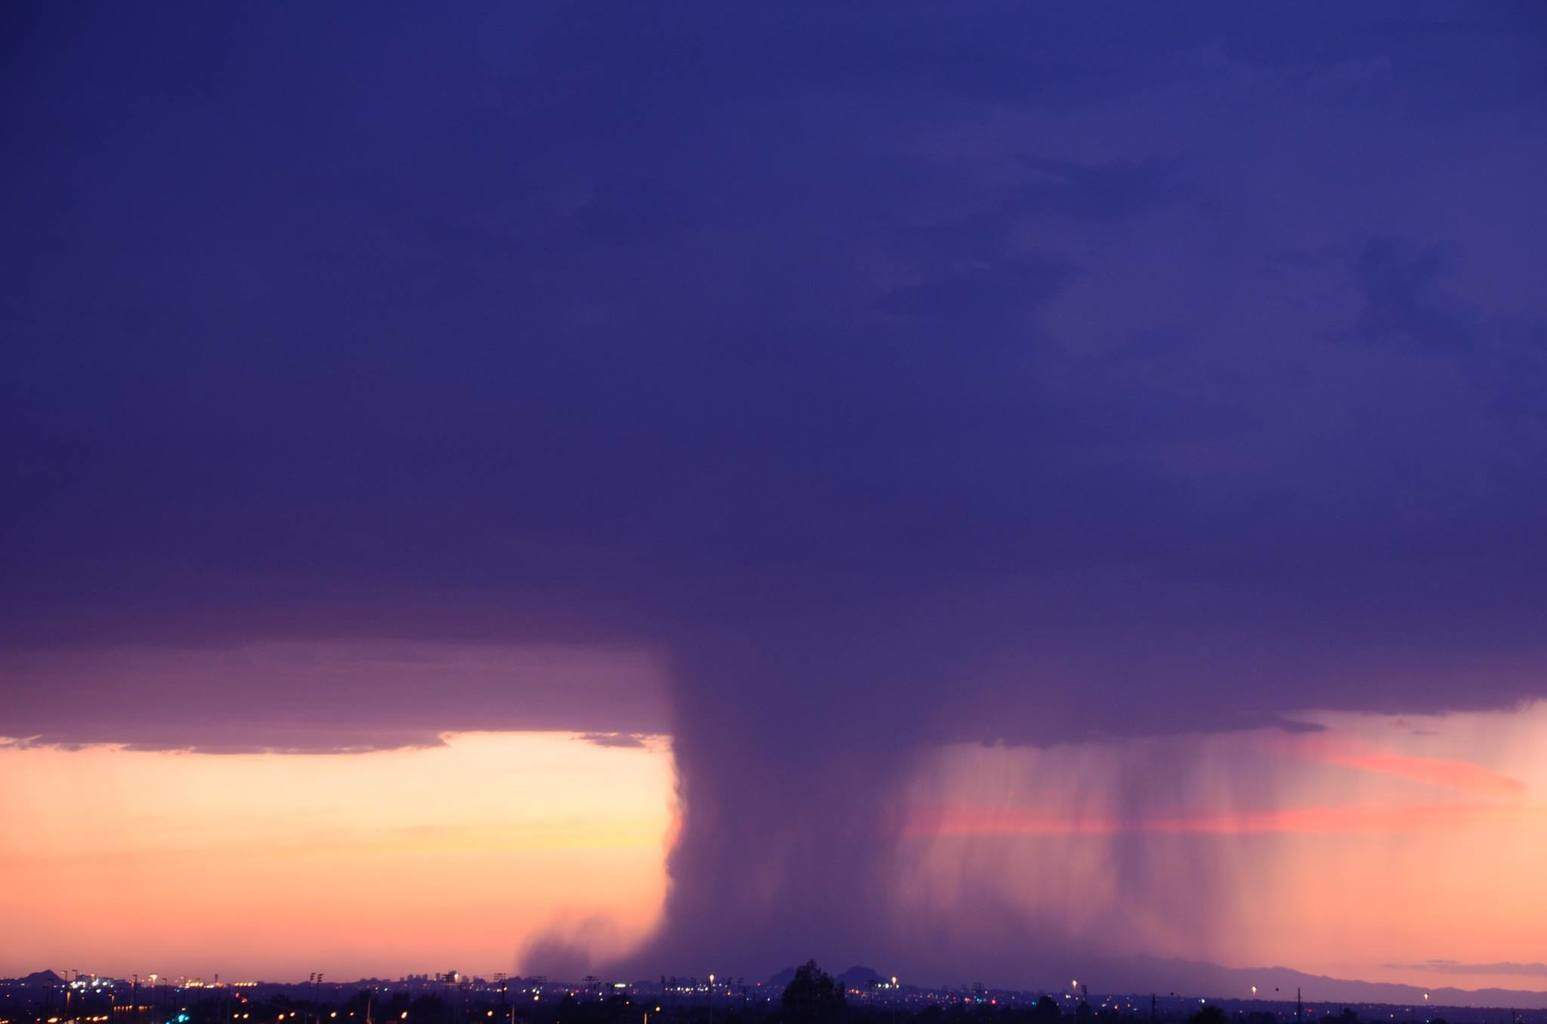 This downpour created a lot of damage at the Phoenix Zoo. From Mesa AZ.